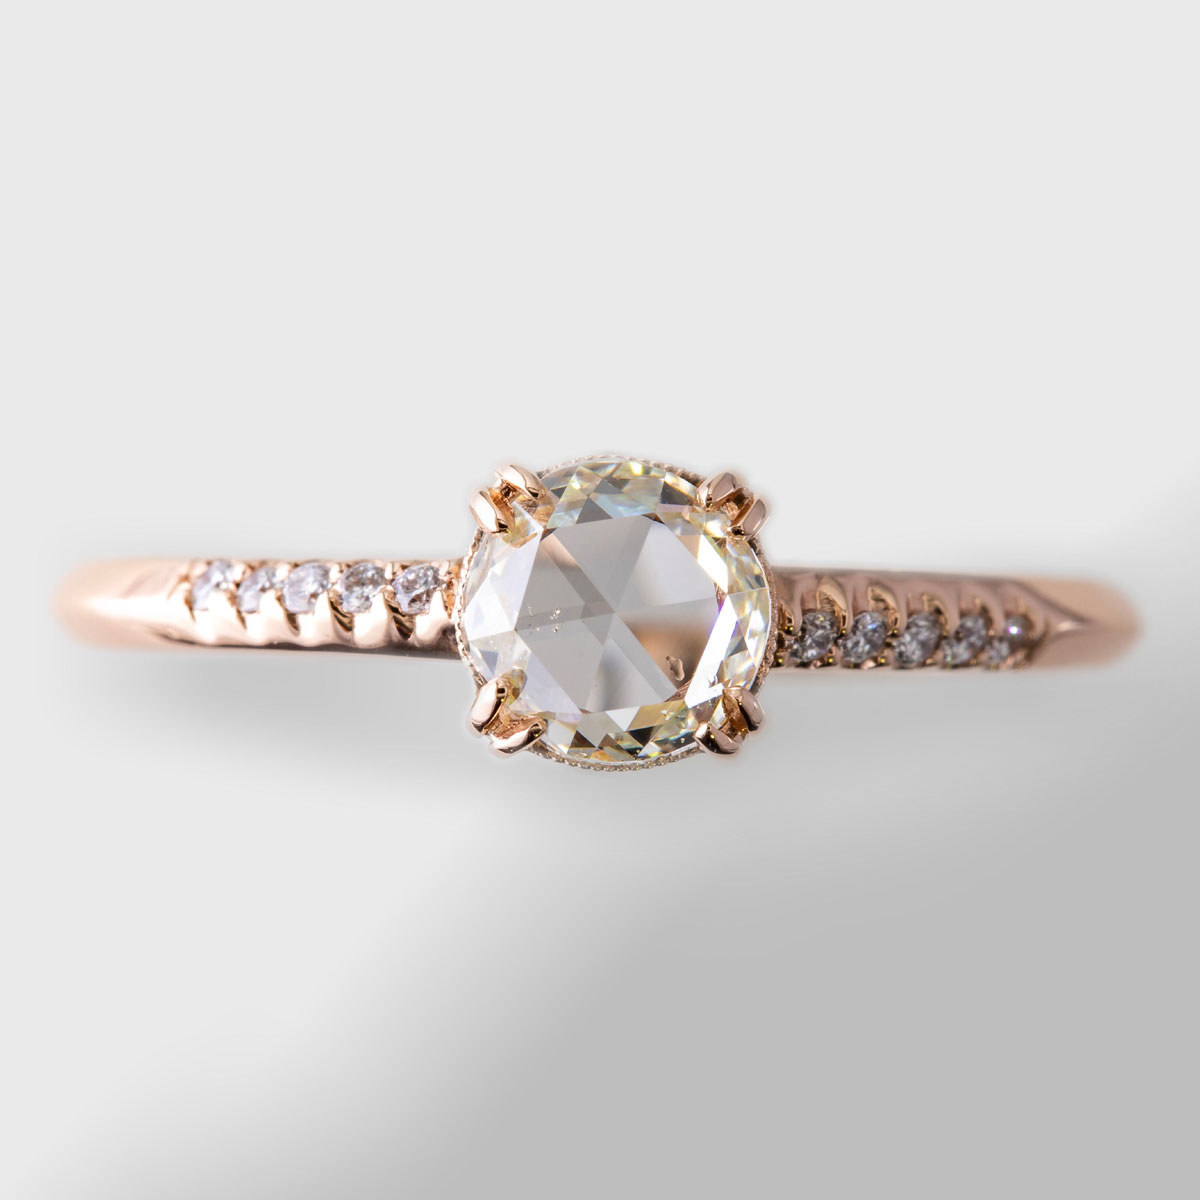 Rose Cut Diamond In Rose Gold With Most Recent Champagne And White Diamond Edge Anniversary Bands In Rose Gold (View 15 of 25)